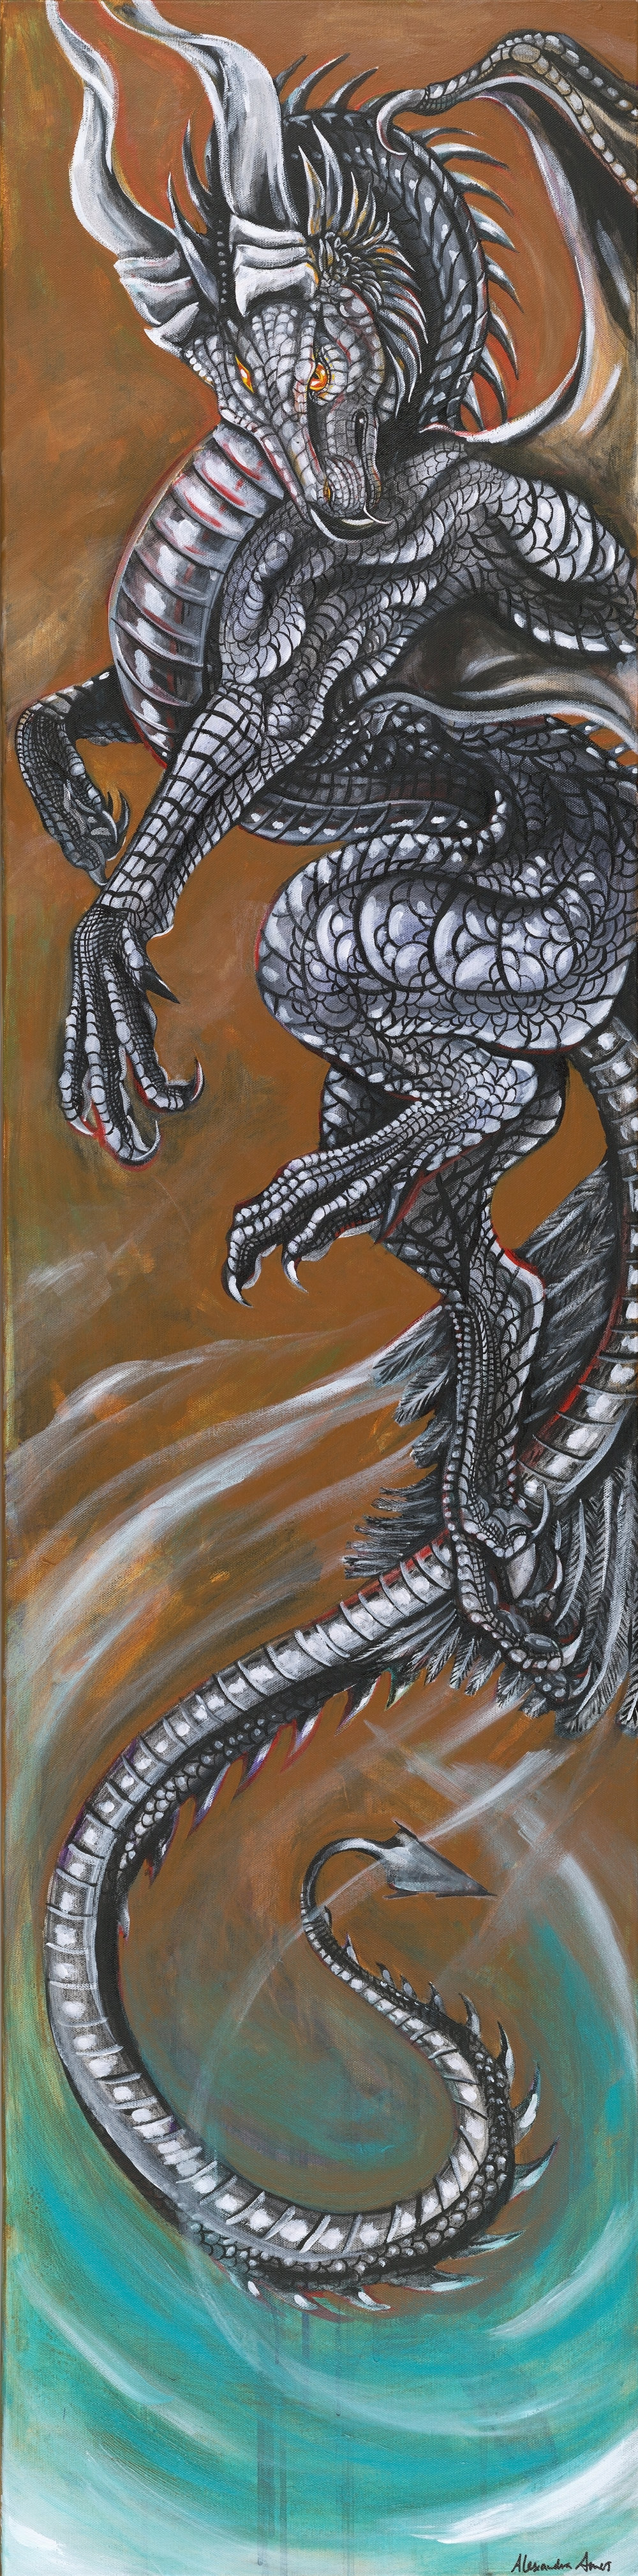 Dragon, acrylic on canvas